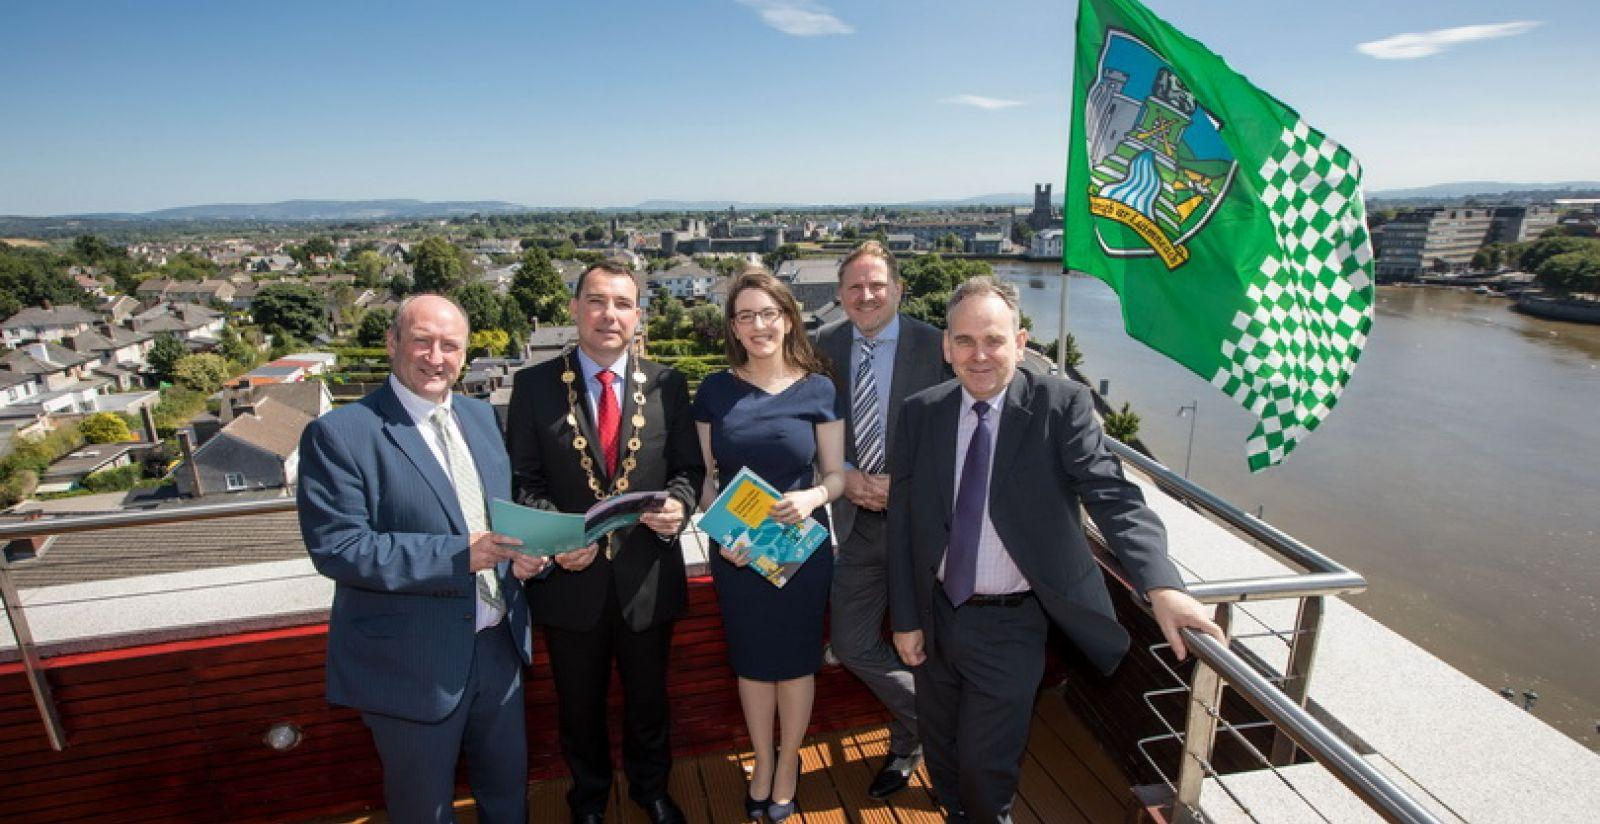 Dr. Pat Daly, Director of Economic Development and Planning for Limerick City & County Council, Mayor of the City and County of Limerick, Cllr James Collins, Ciara Morley, Senior Consultant with EY-DKM, Neil Gibson, Chief Economist, EY Ireland and Michel Lemagnen, Director MCJ Lemagnen Associates Ltd reviews the report prior to its launch in the Limerick Strand Hotel.   Picture: Sean Curtin True Media